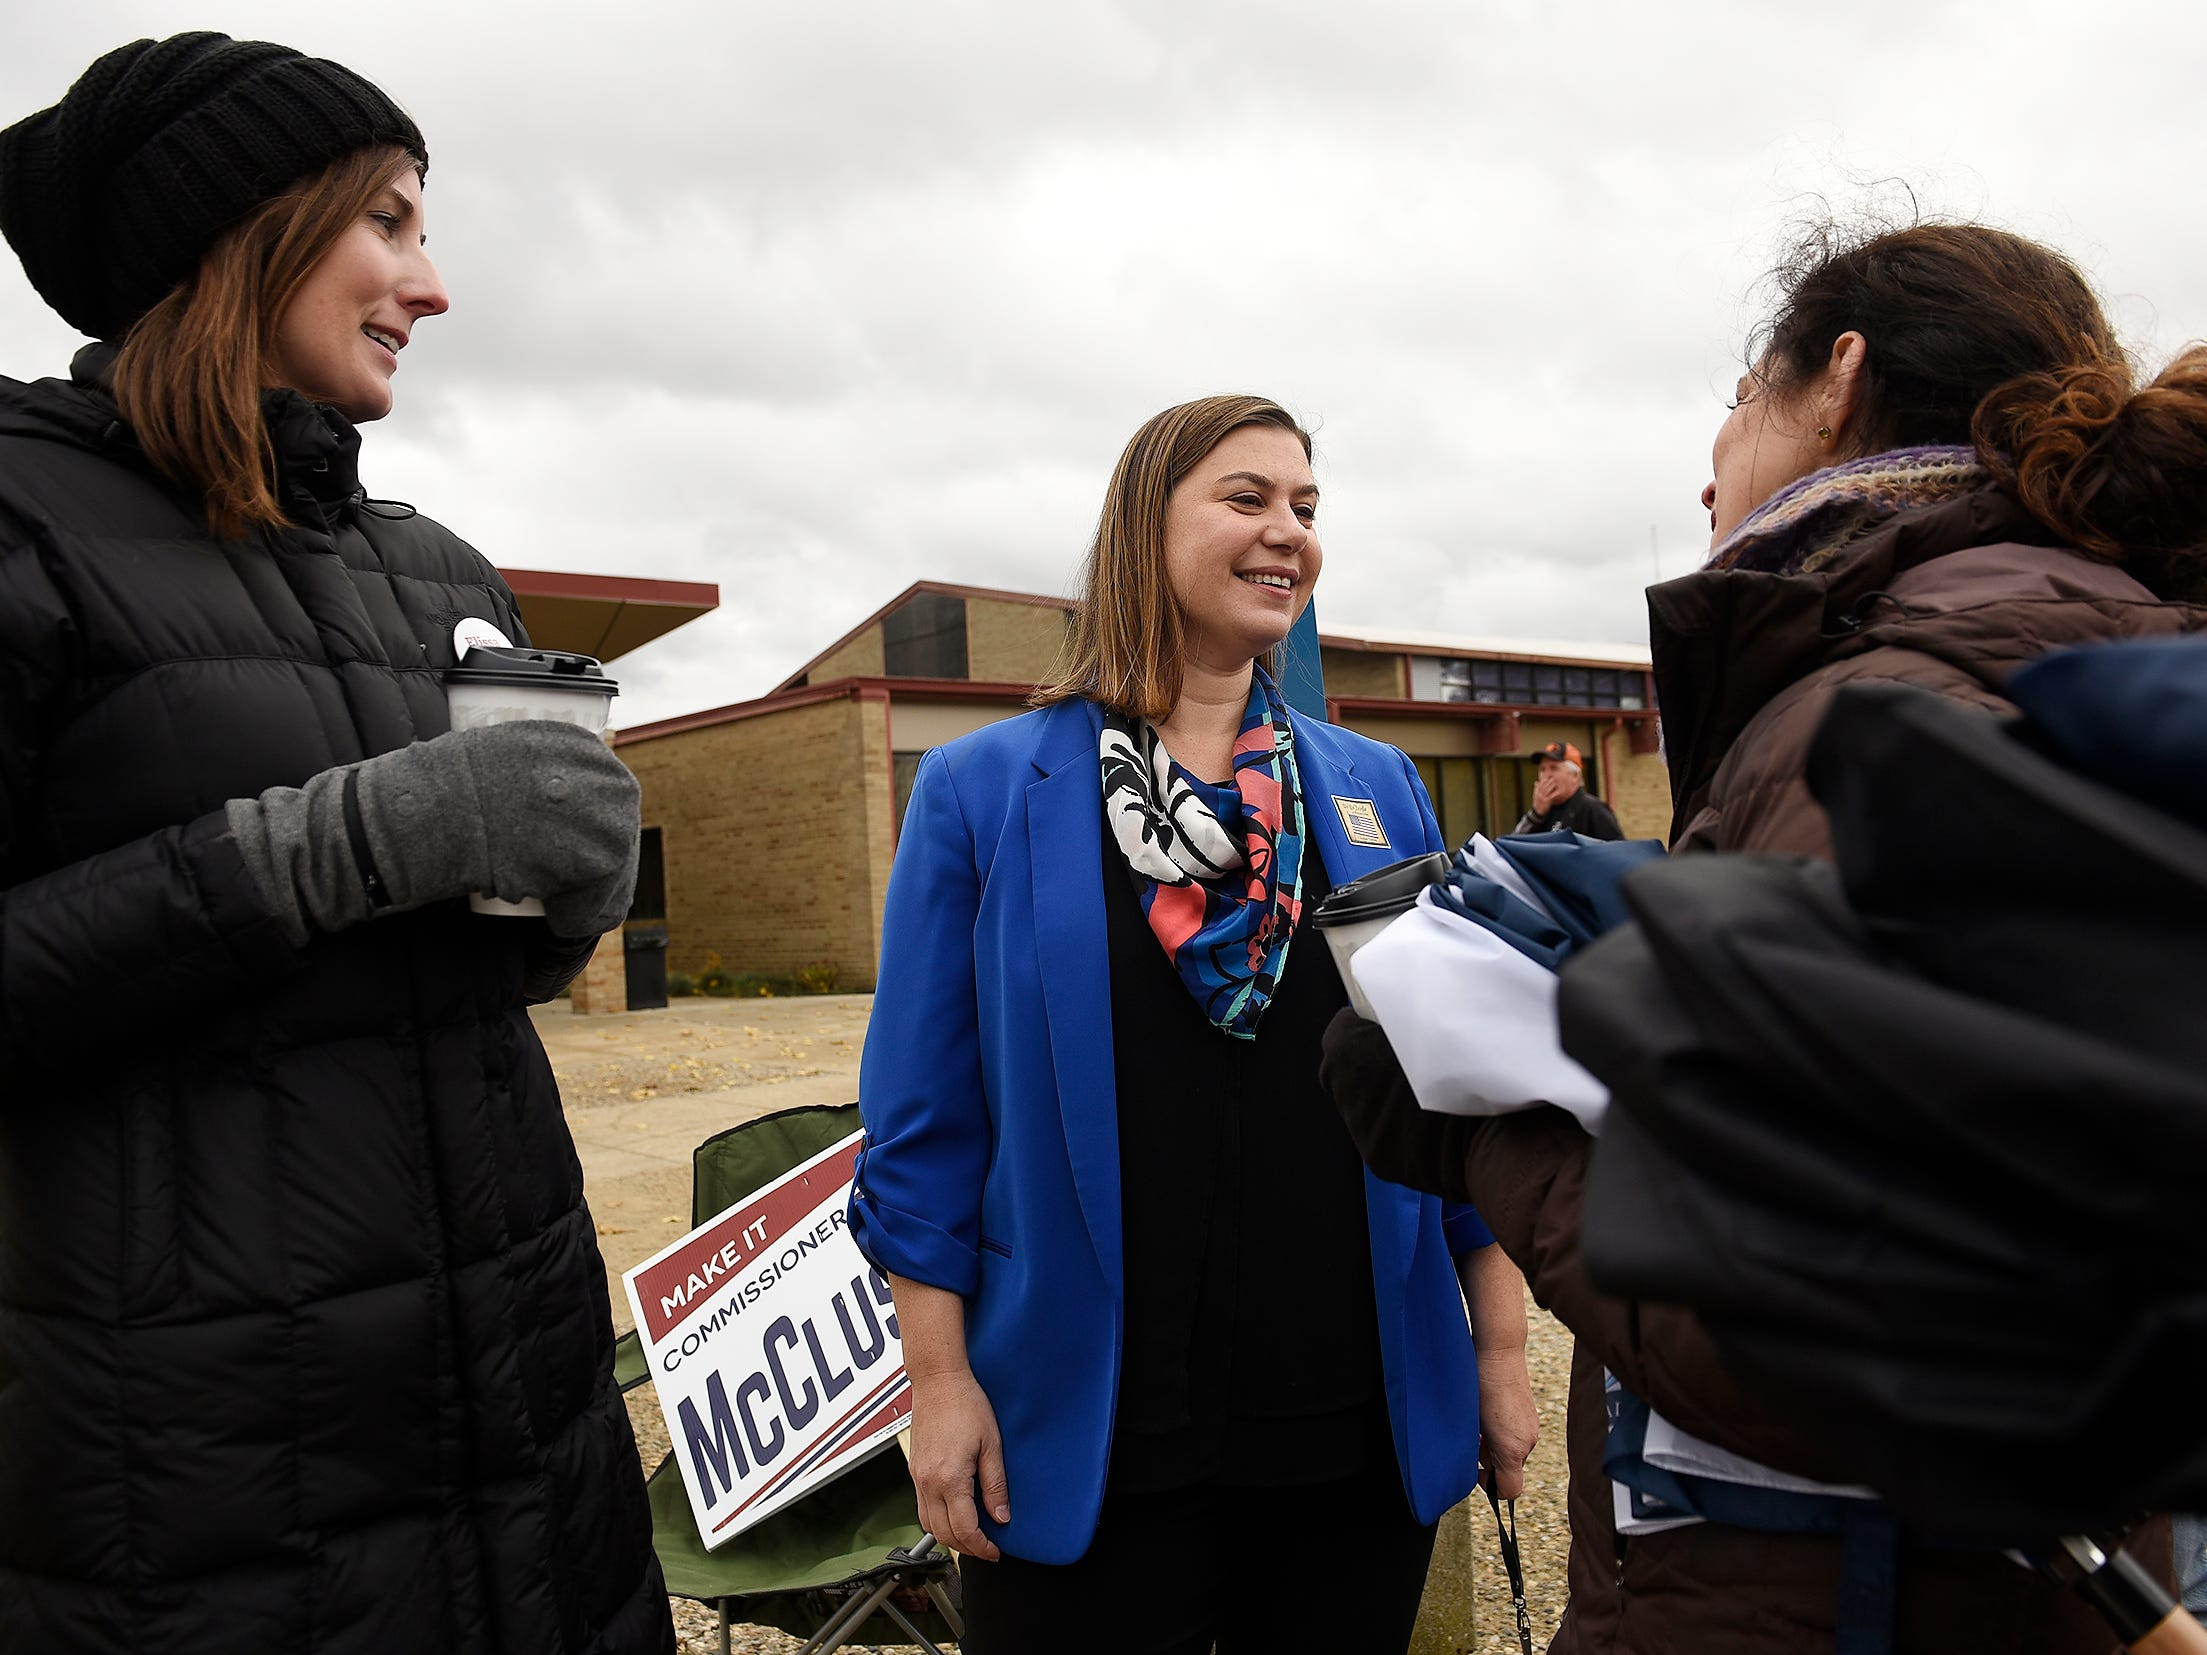 Elissa Slotkin, Democratic candidate for U.S. House of Representatives, talks to supporters Leigh Fullenkamp, left, 35, of Columbus, Ohio, and sister-in-law Amy Gottesman, 41, of St. Louis after casting her ballot at the Karl Richter Community Center in Holly on Nov., 6, 2018.